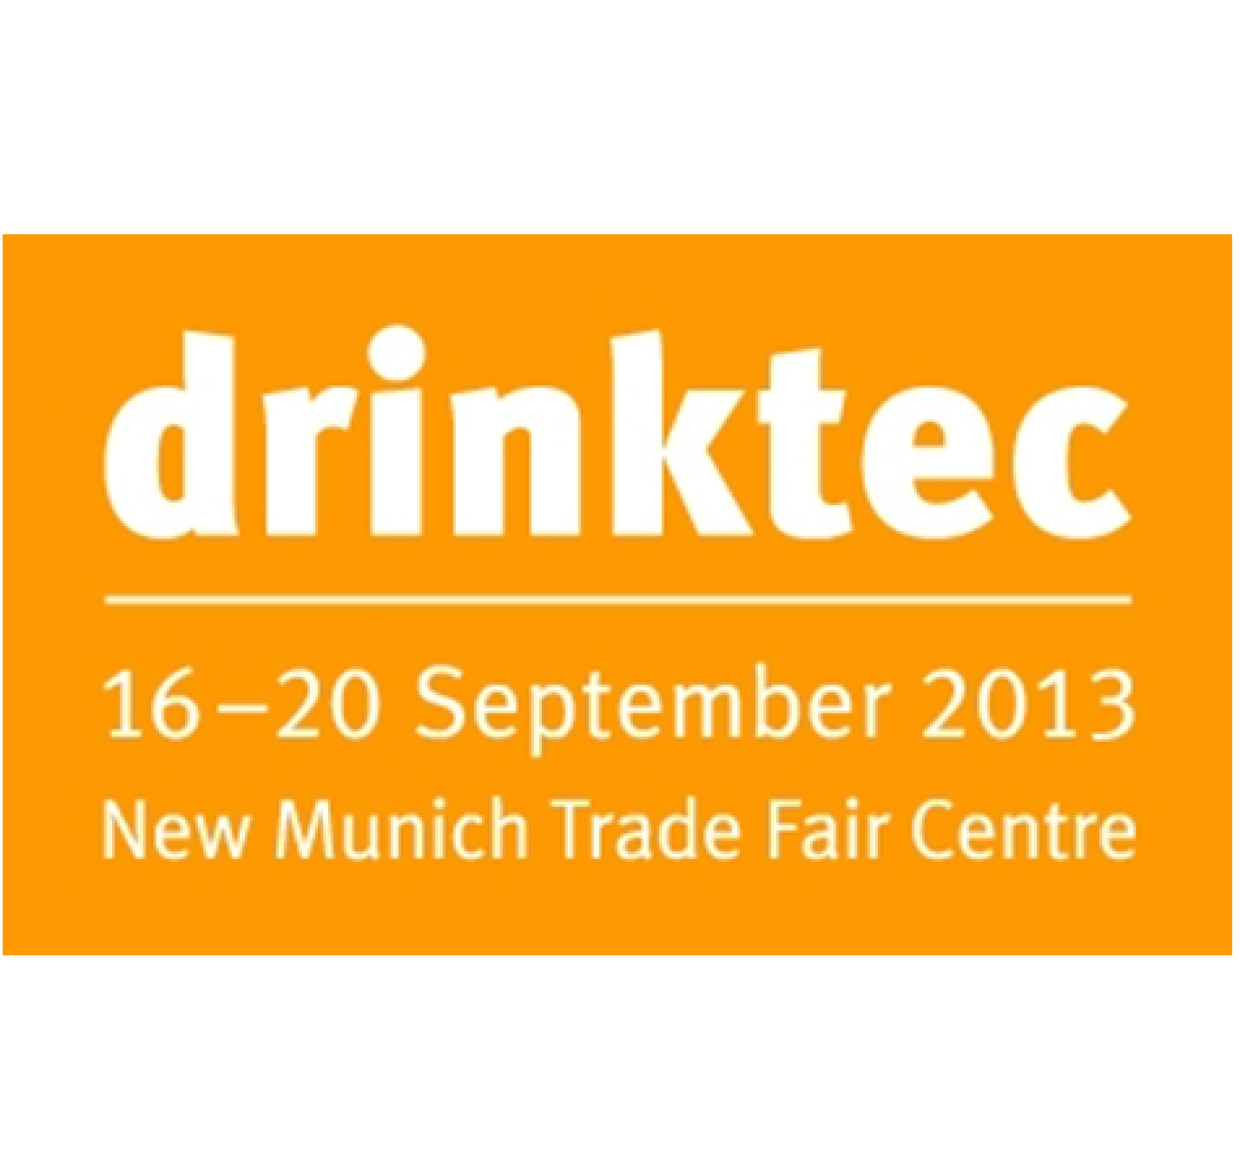 IF YOU PASS BY DRINKTECH at MUNCHEN